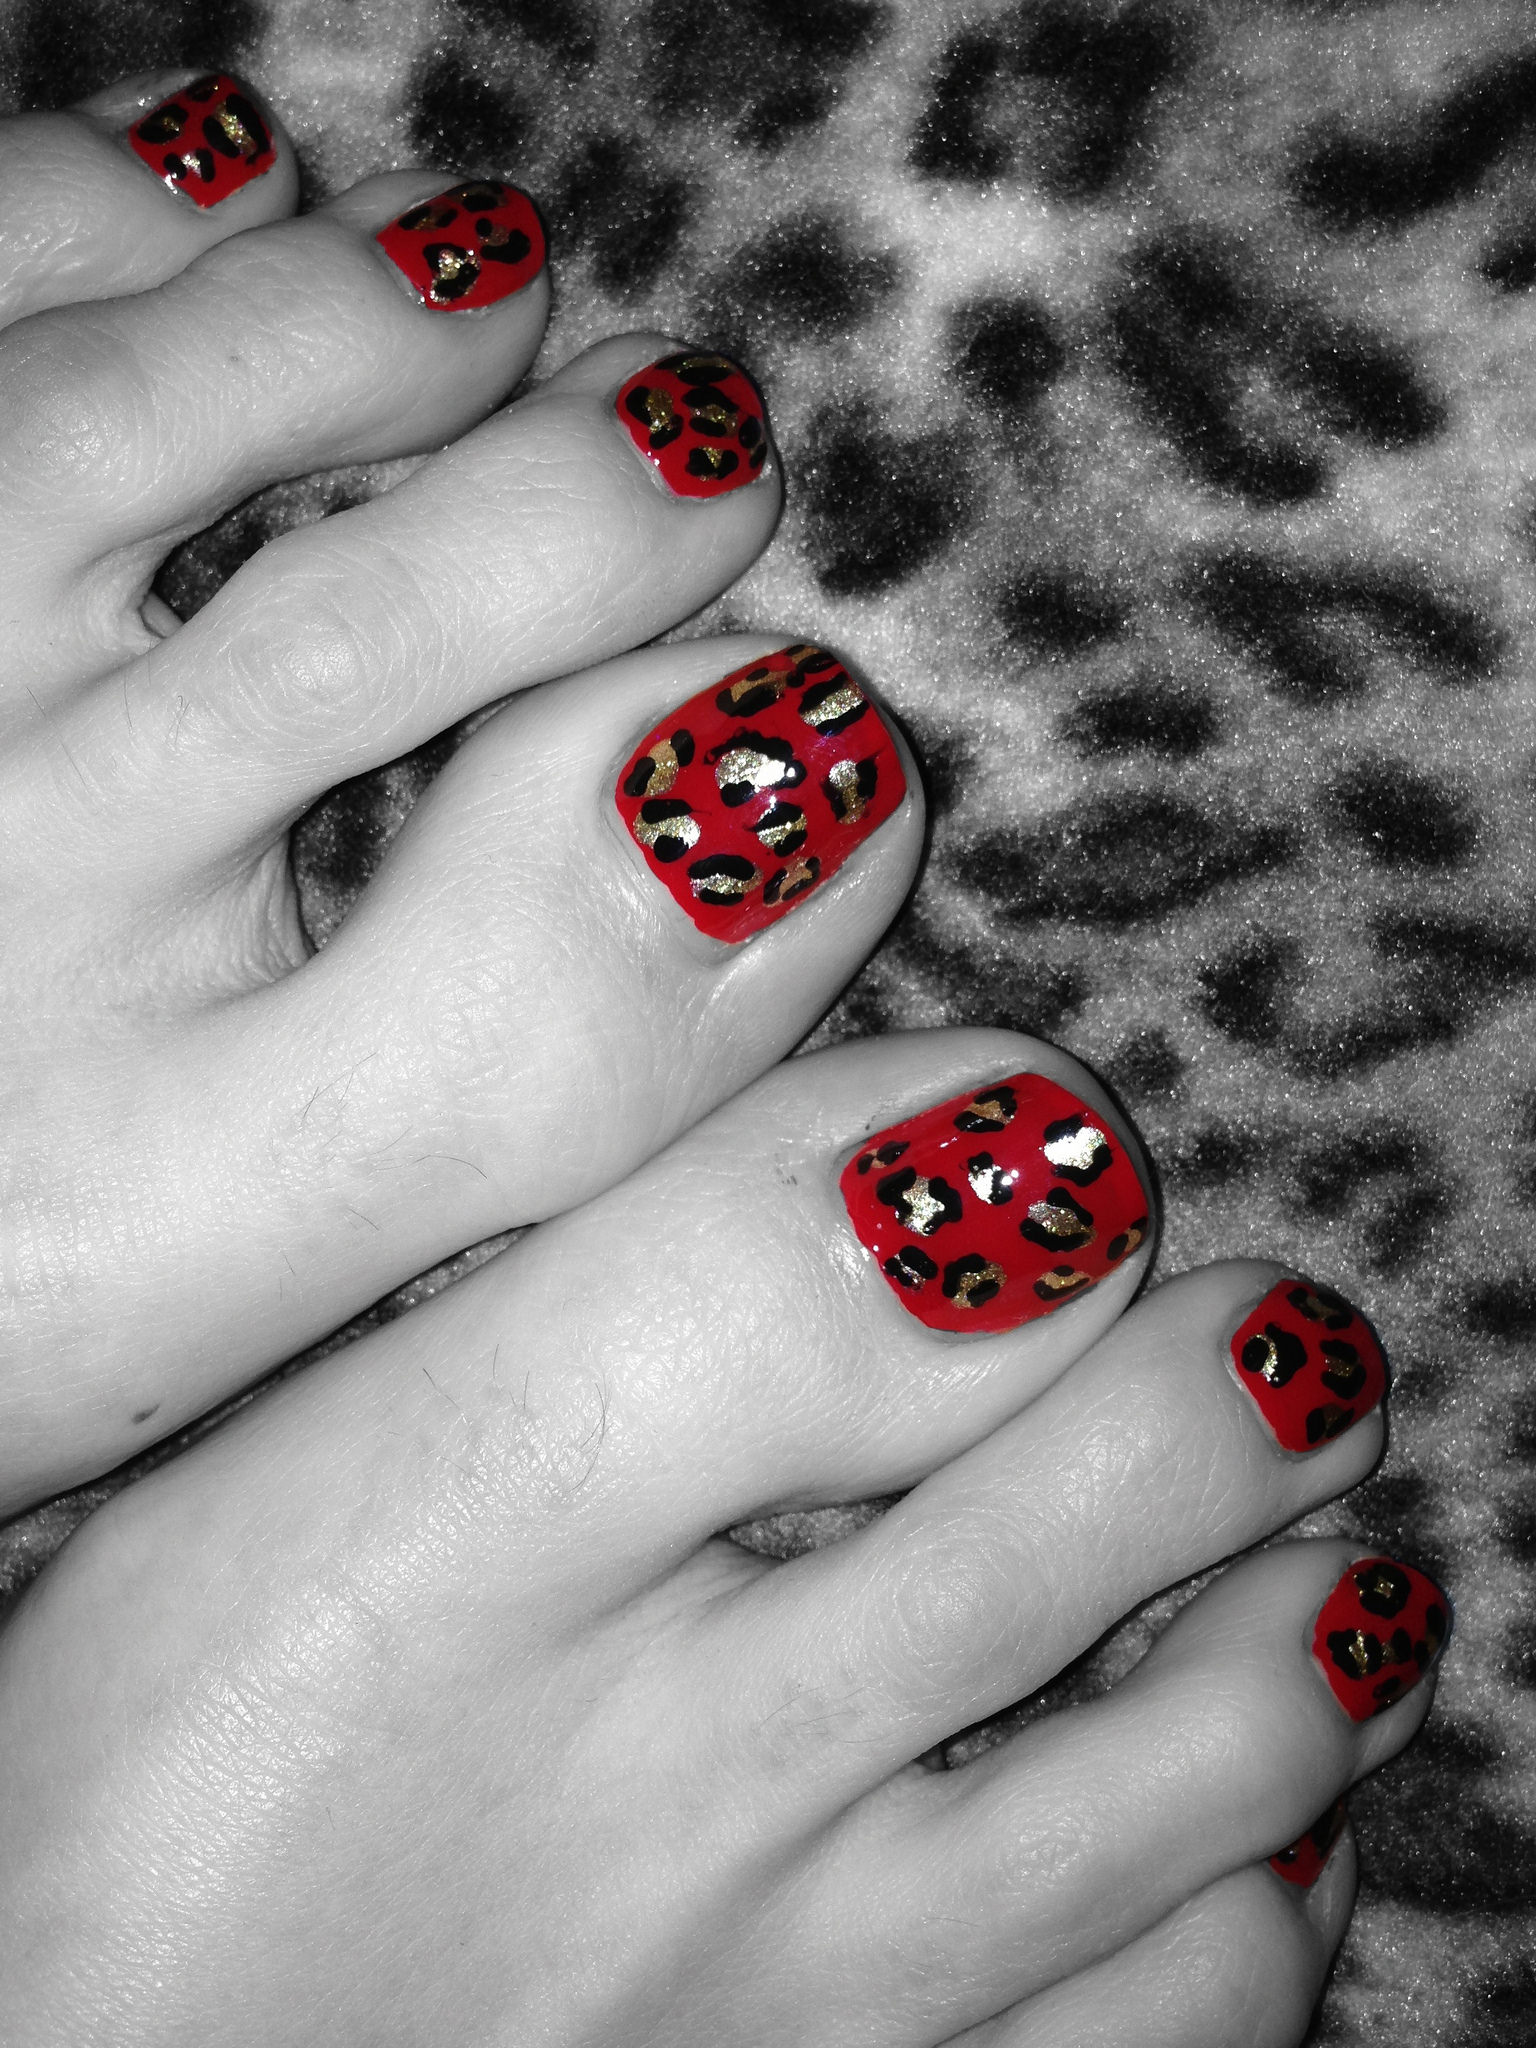 toe nail design with black and red colors